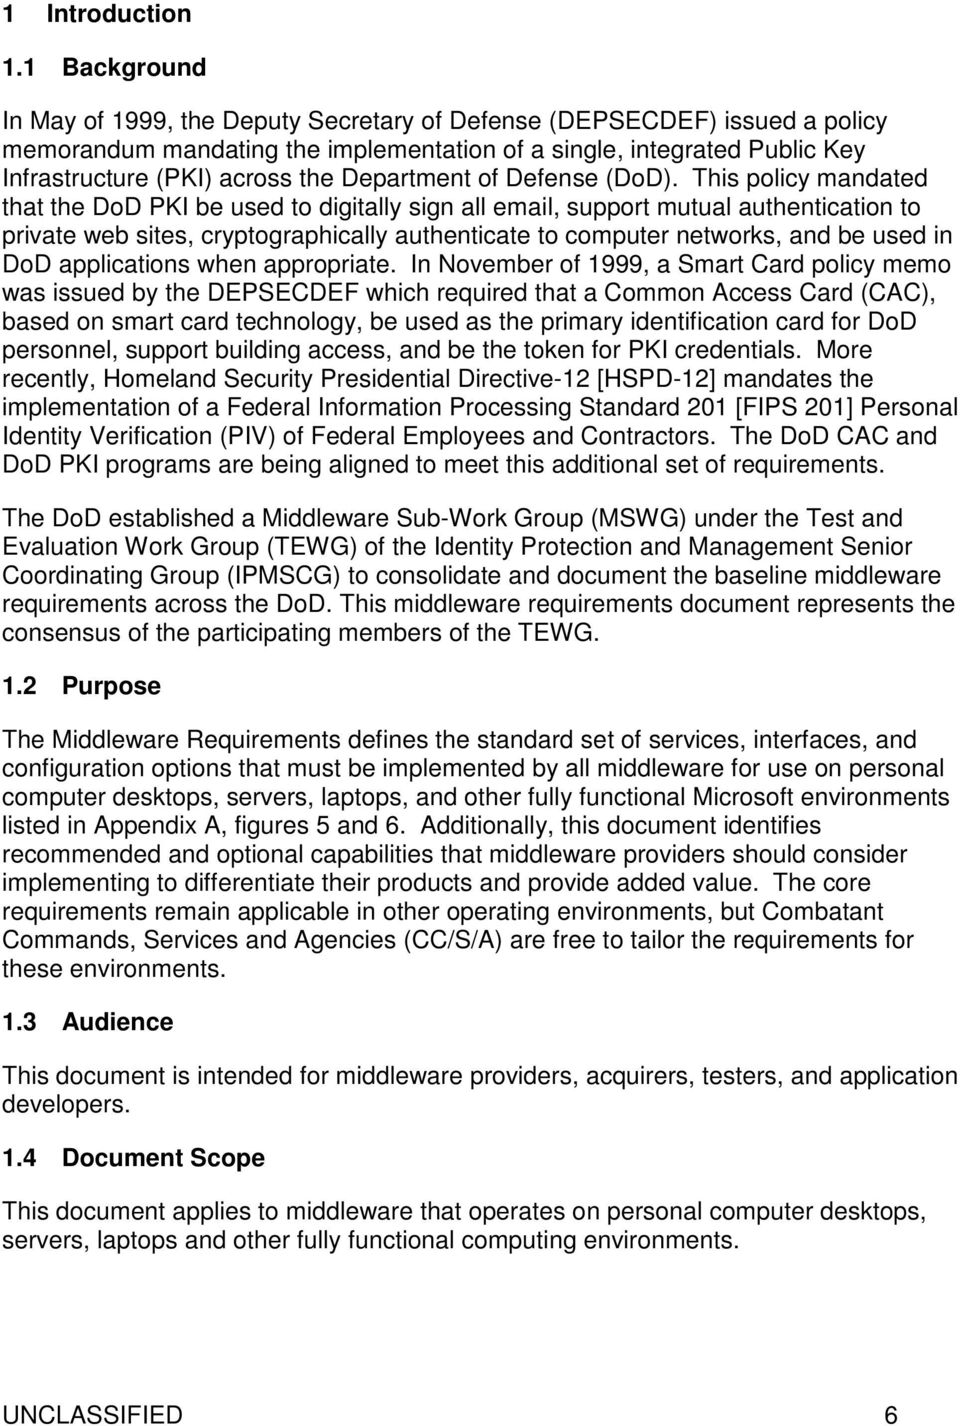 DoD CAC Middleware Requirements Release PDF